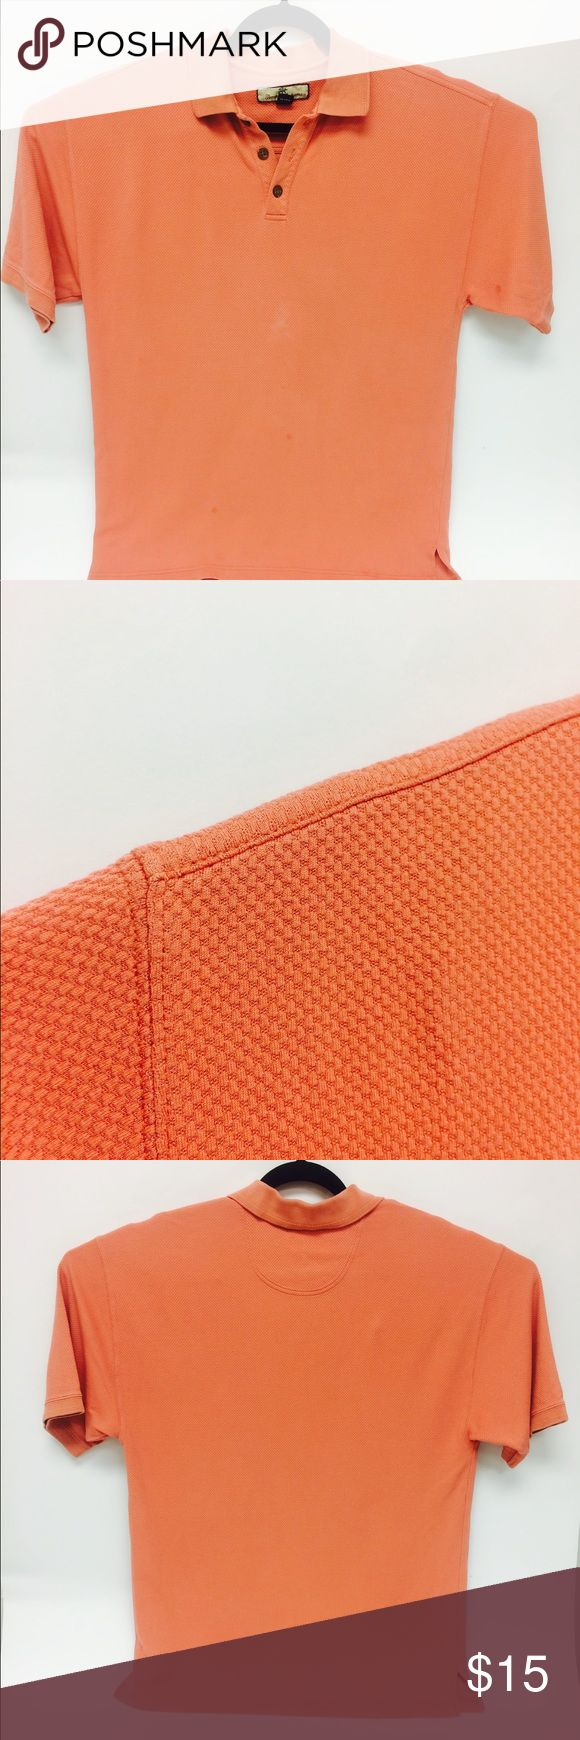 Tommy Bahama Orange Silk/ Cotton Polo Shirt In excellent gently used condition. Tommy Bahama Shirts Polos